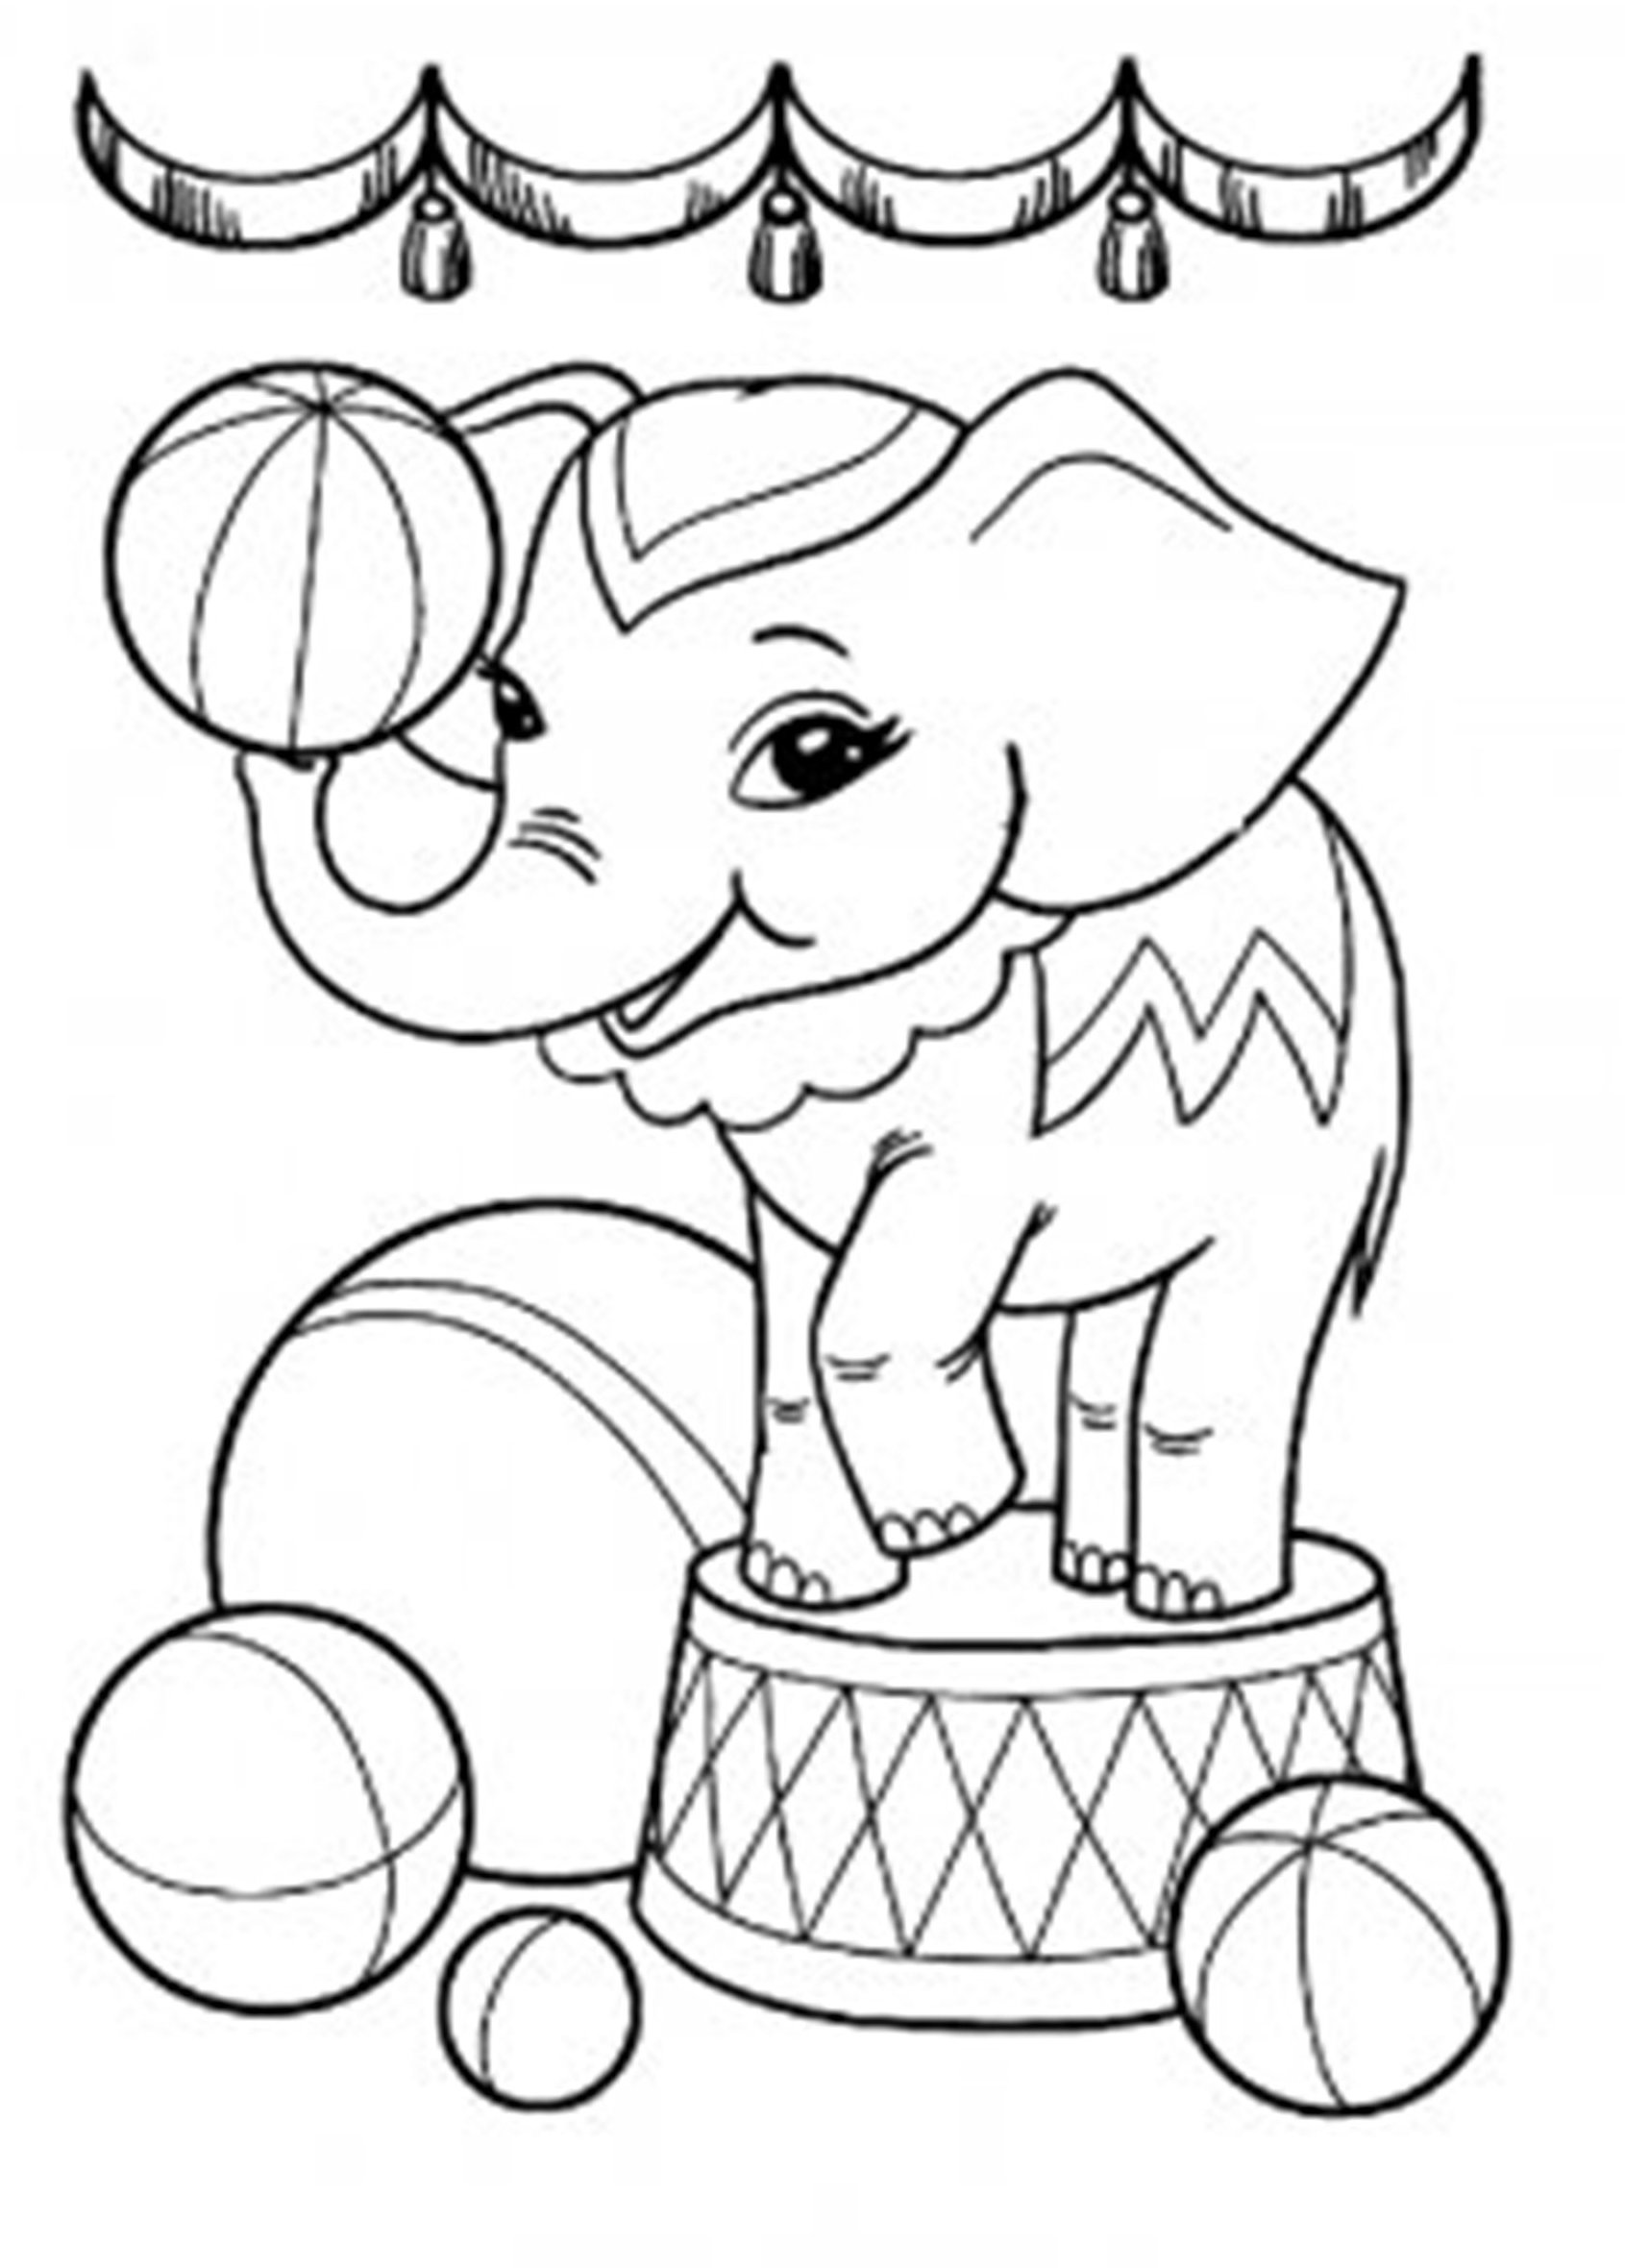 colouring pages of elephant elephant coloring pages for kids printable for free elephant of pages colouring